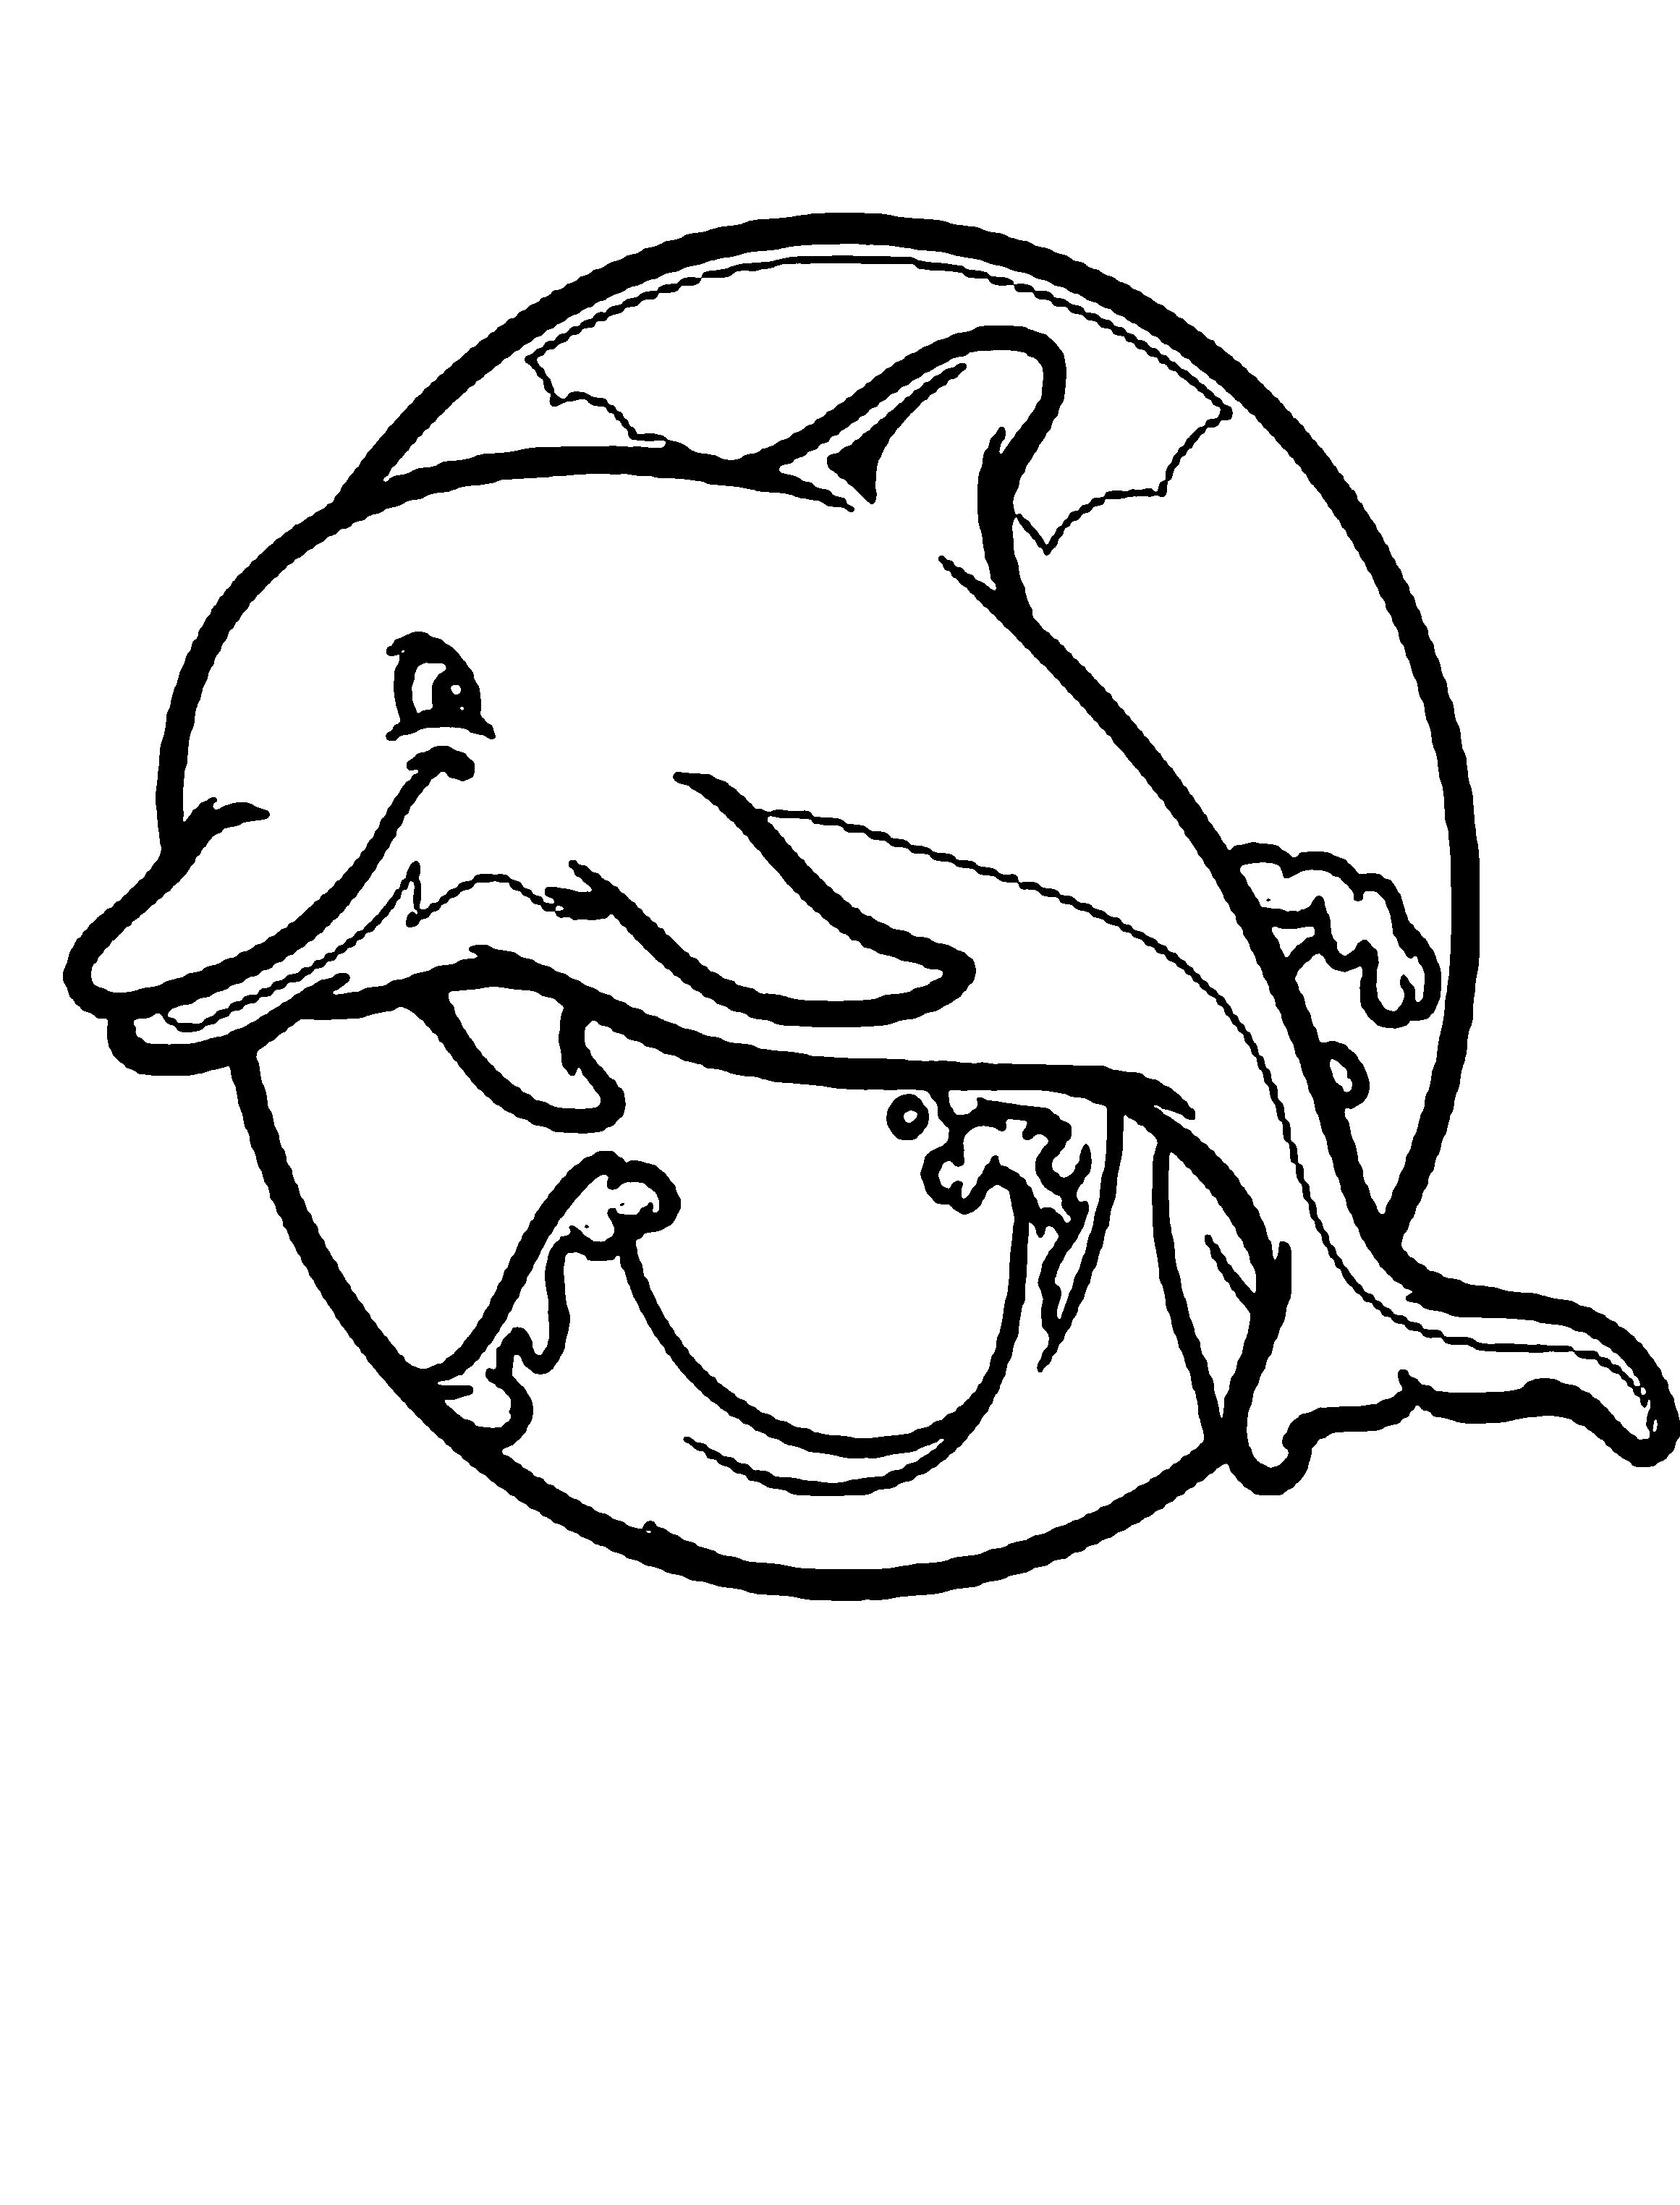 Easy Dolphin Coloring Pages Ideas Dolphin Coloring Pages Fairy Coloring Pages Coloring Pages